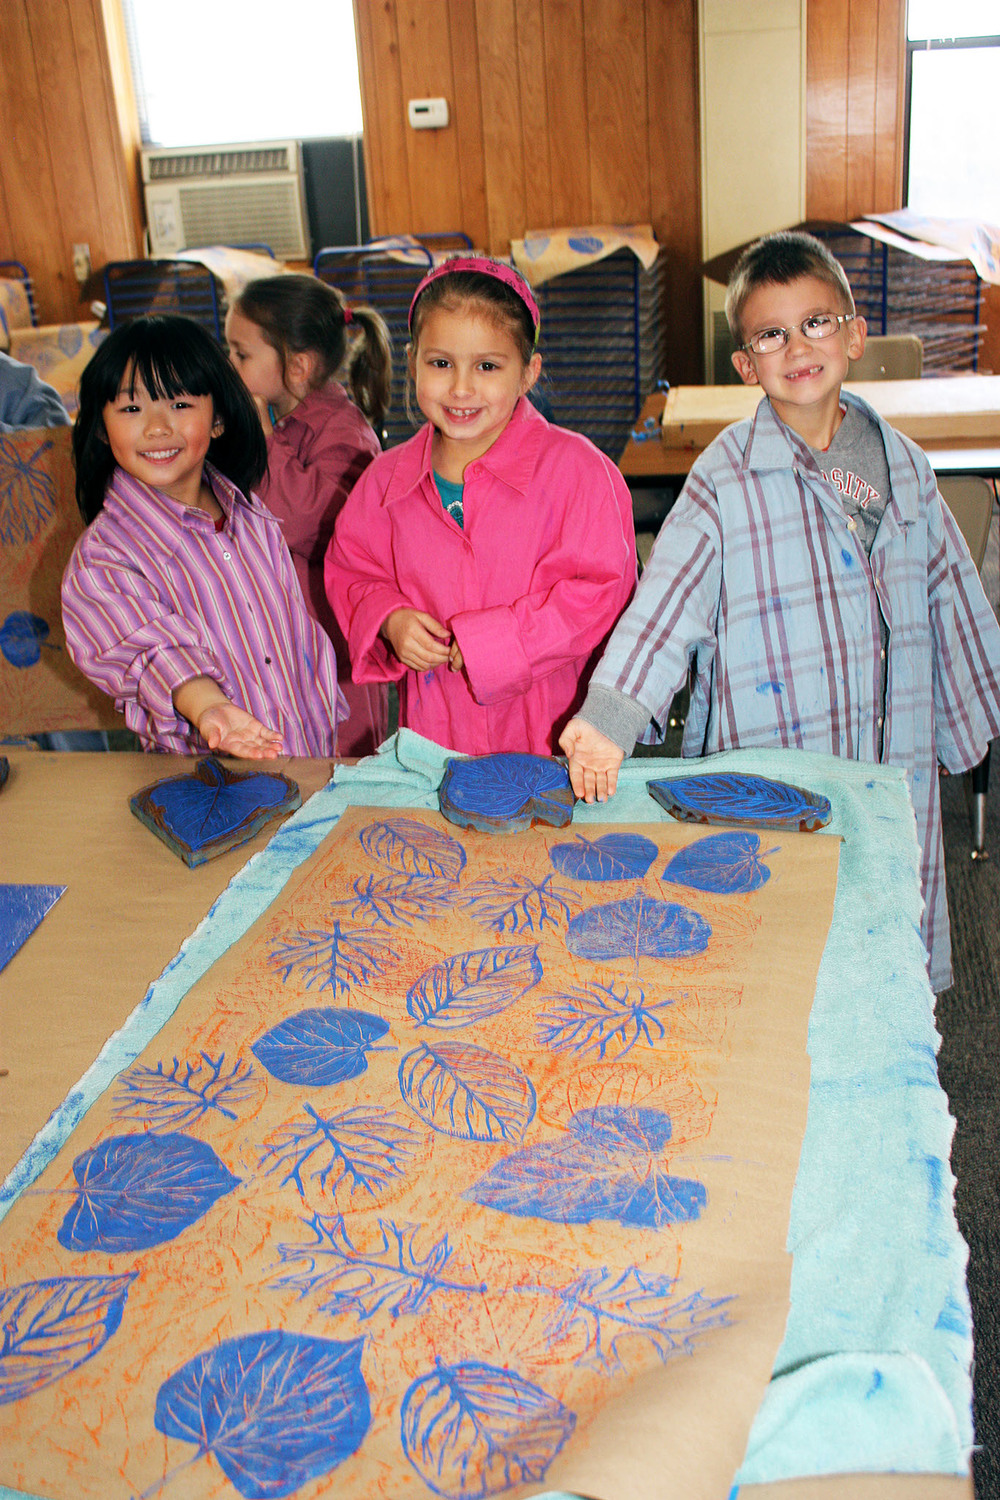 Students show off their handiwork at the Children's Summer Art Program.